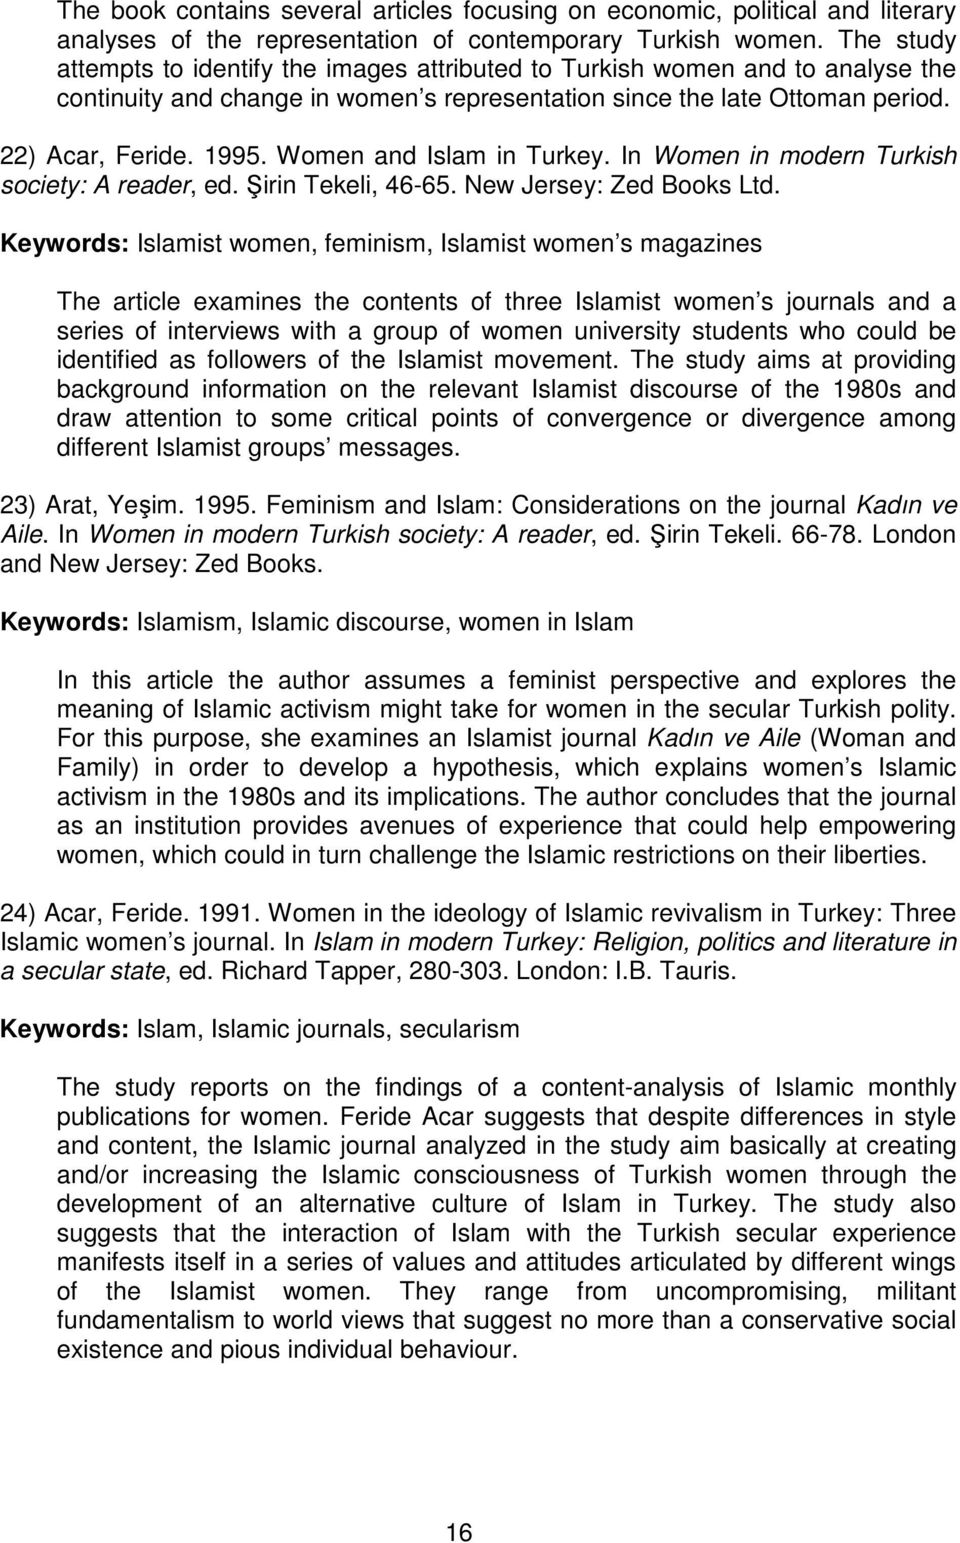 Women and Islam in Turkey. In Women in modern Turkish society: A reader, ed. Şirin Tekeli, 46-65. New Jersey: Zed Books Ltd.